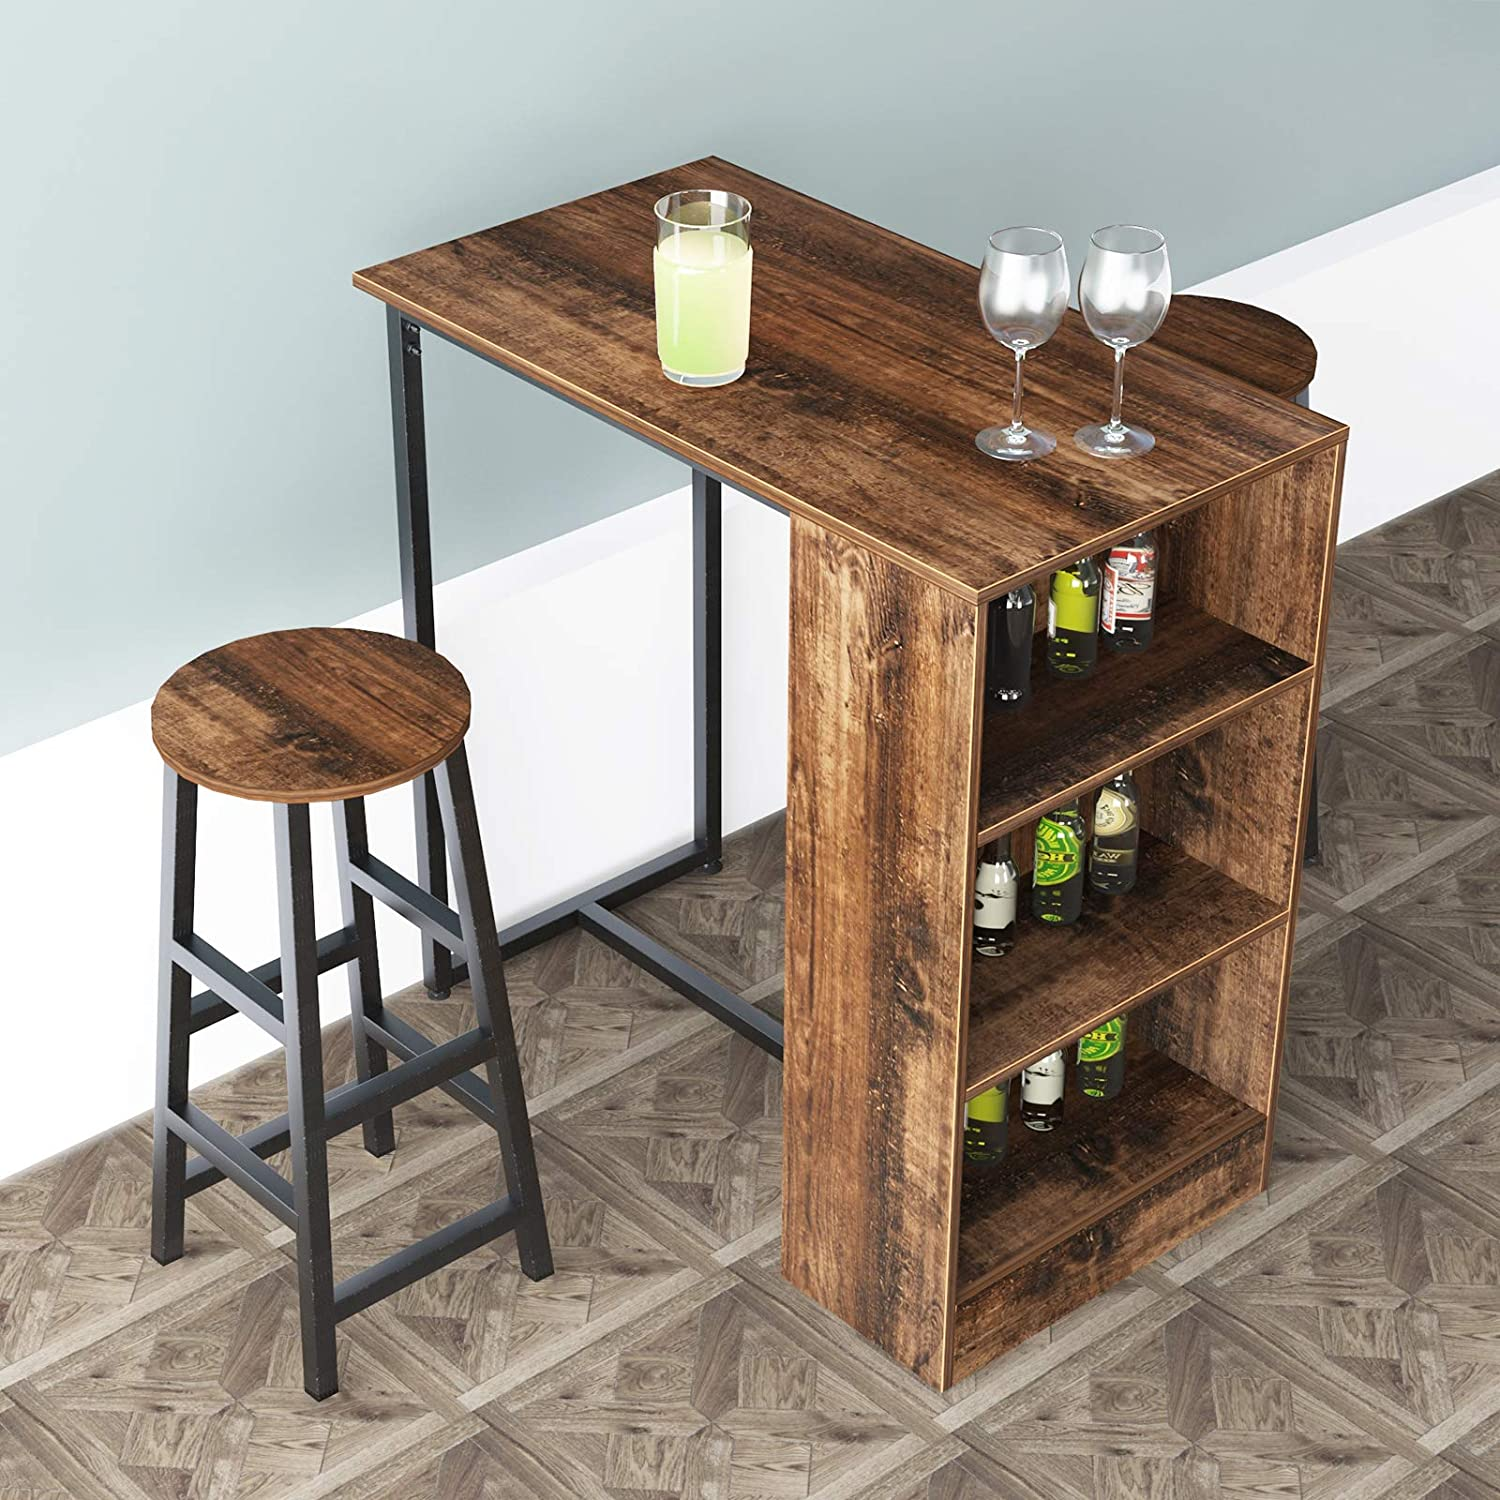 Soges 35 8 Inch Kitchen Counter Height Dining Table Set Bar Table With Storage Shelve Set Pub